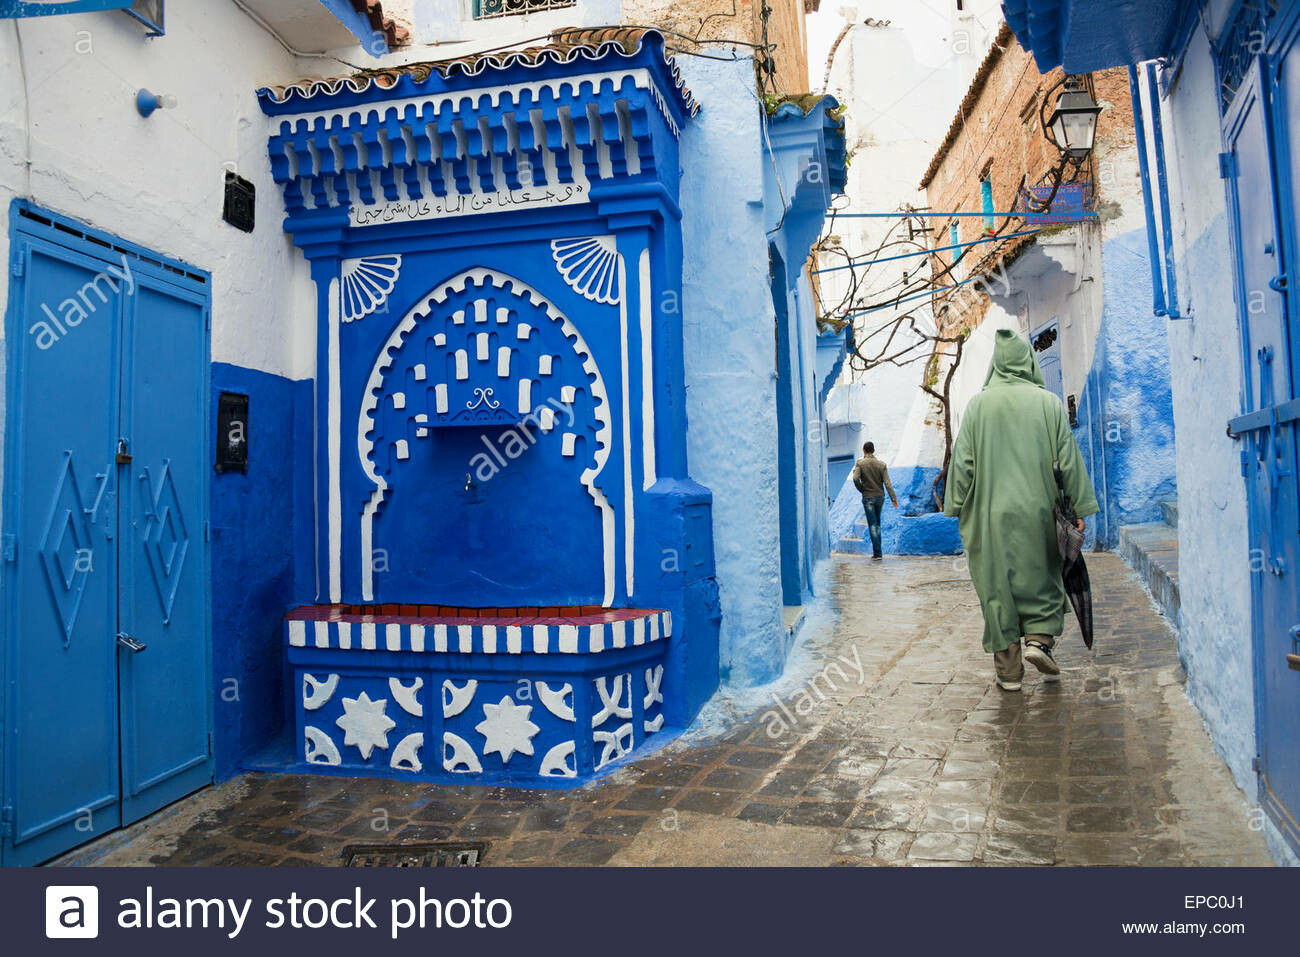 Claire bian water fountain with islamic arch in street scene chefchaouen morocco epc0j1